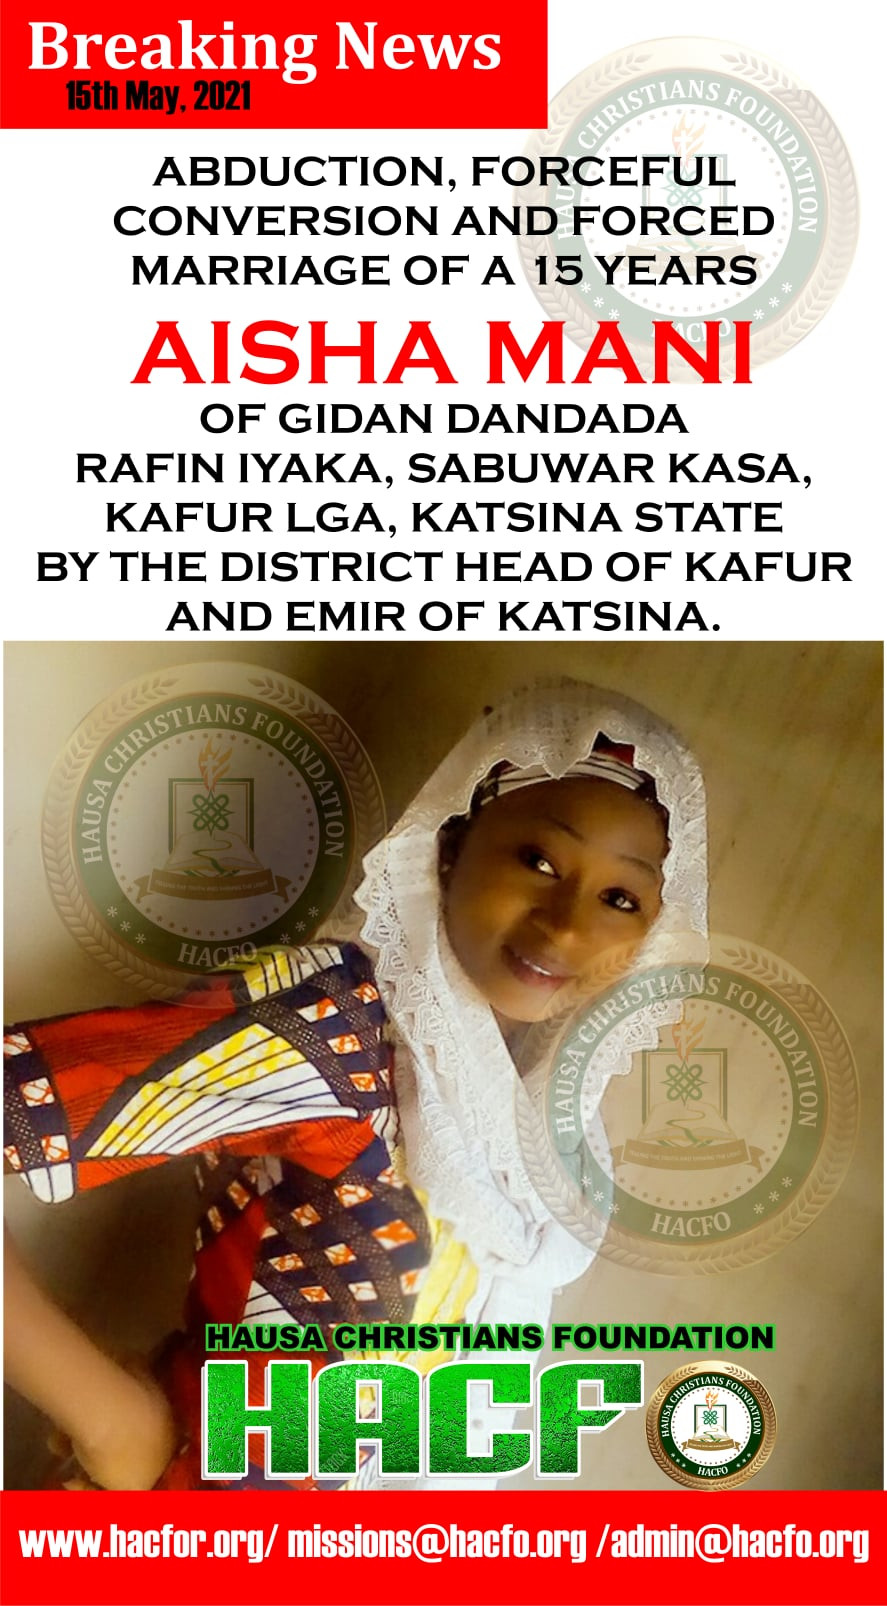 15-year-old Christian girl allegedly abducted, forcefully converted to Islam and married off to abductor in Katsina State